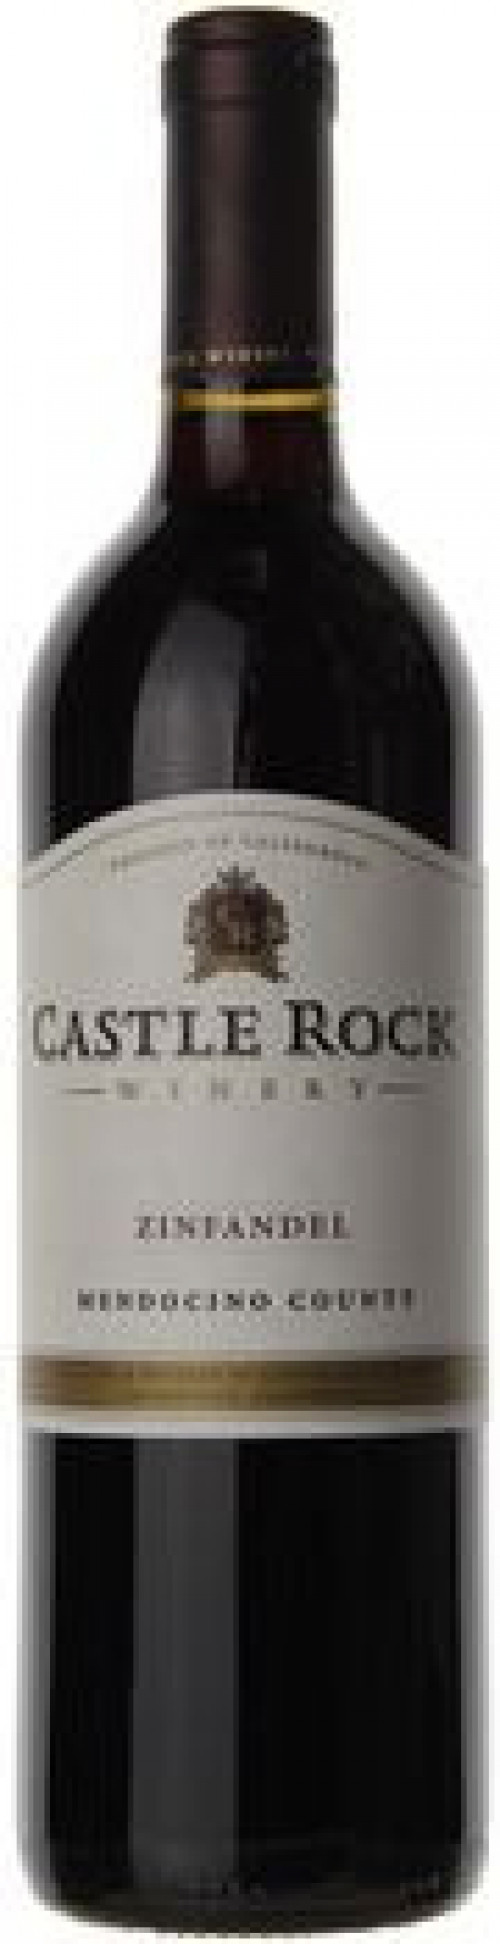 Castle Rock Zinfandel 750ml